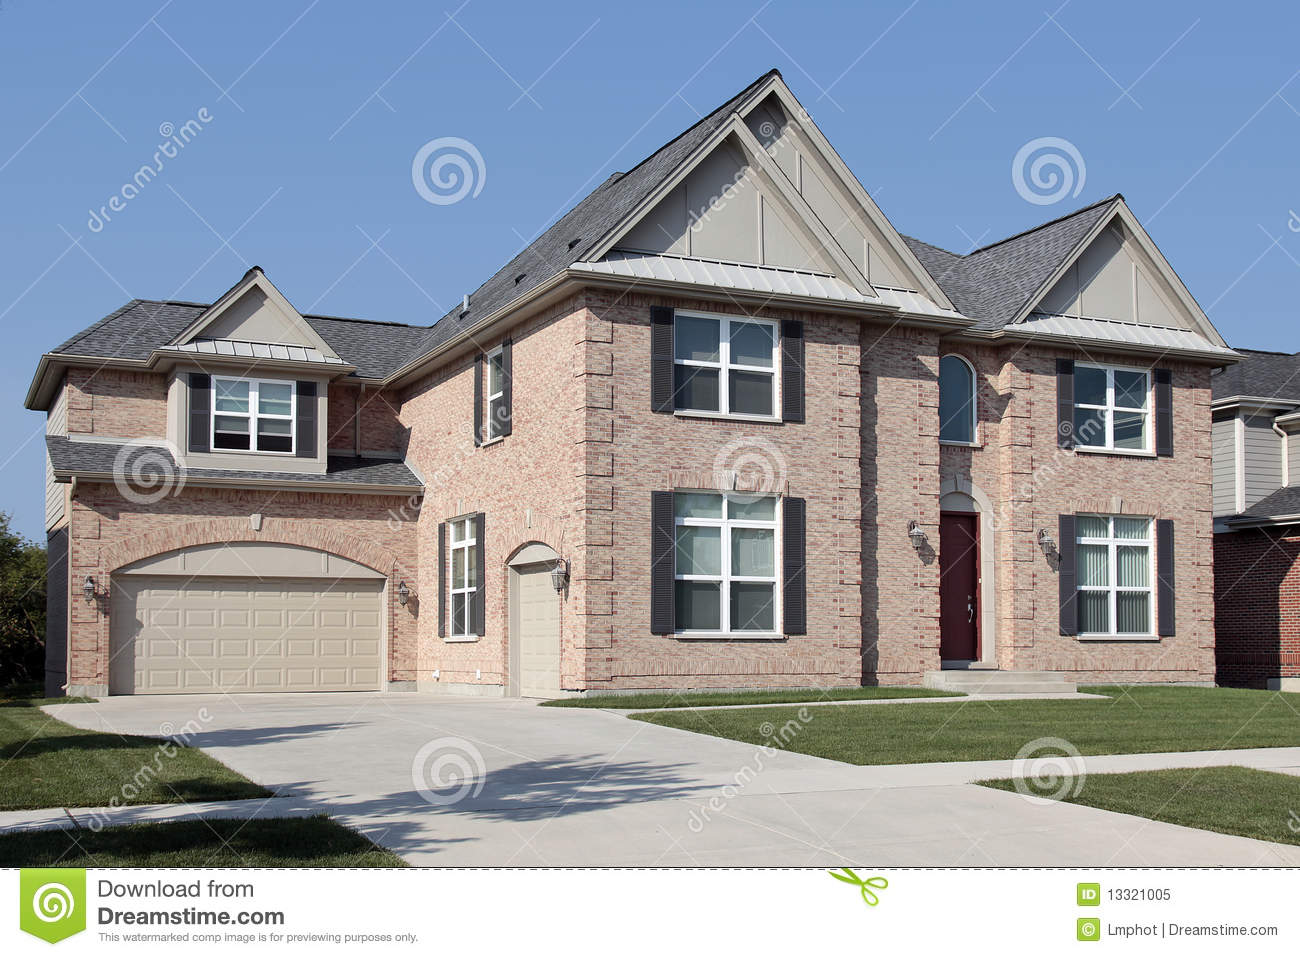 Brick house with black shutters royalty free stock photo image 13321005 - Red brick house black shutters ...